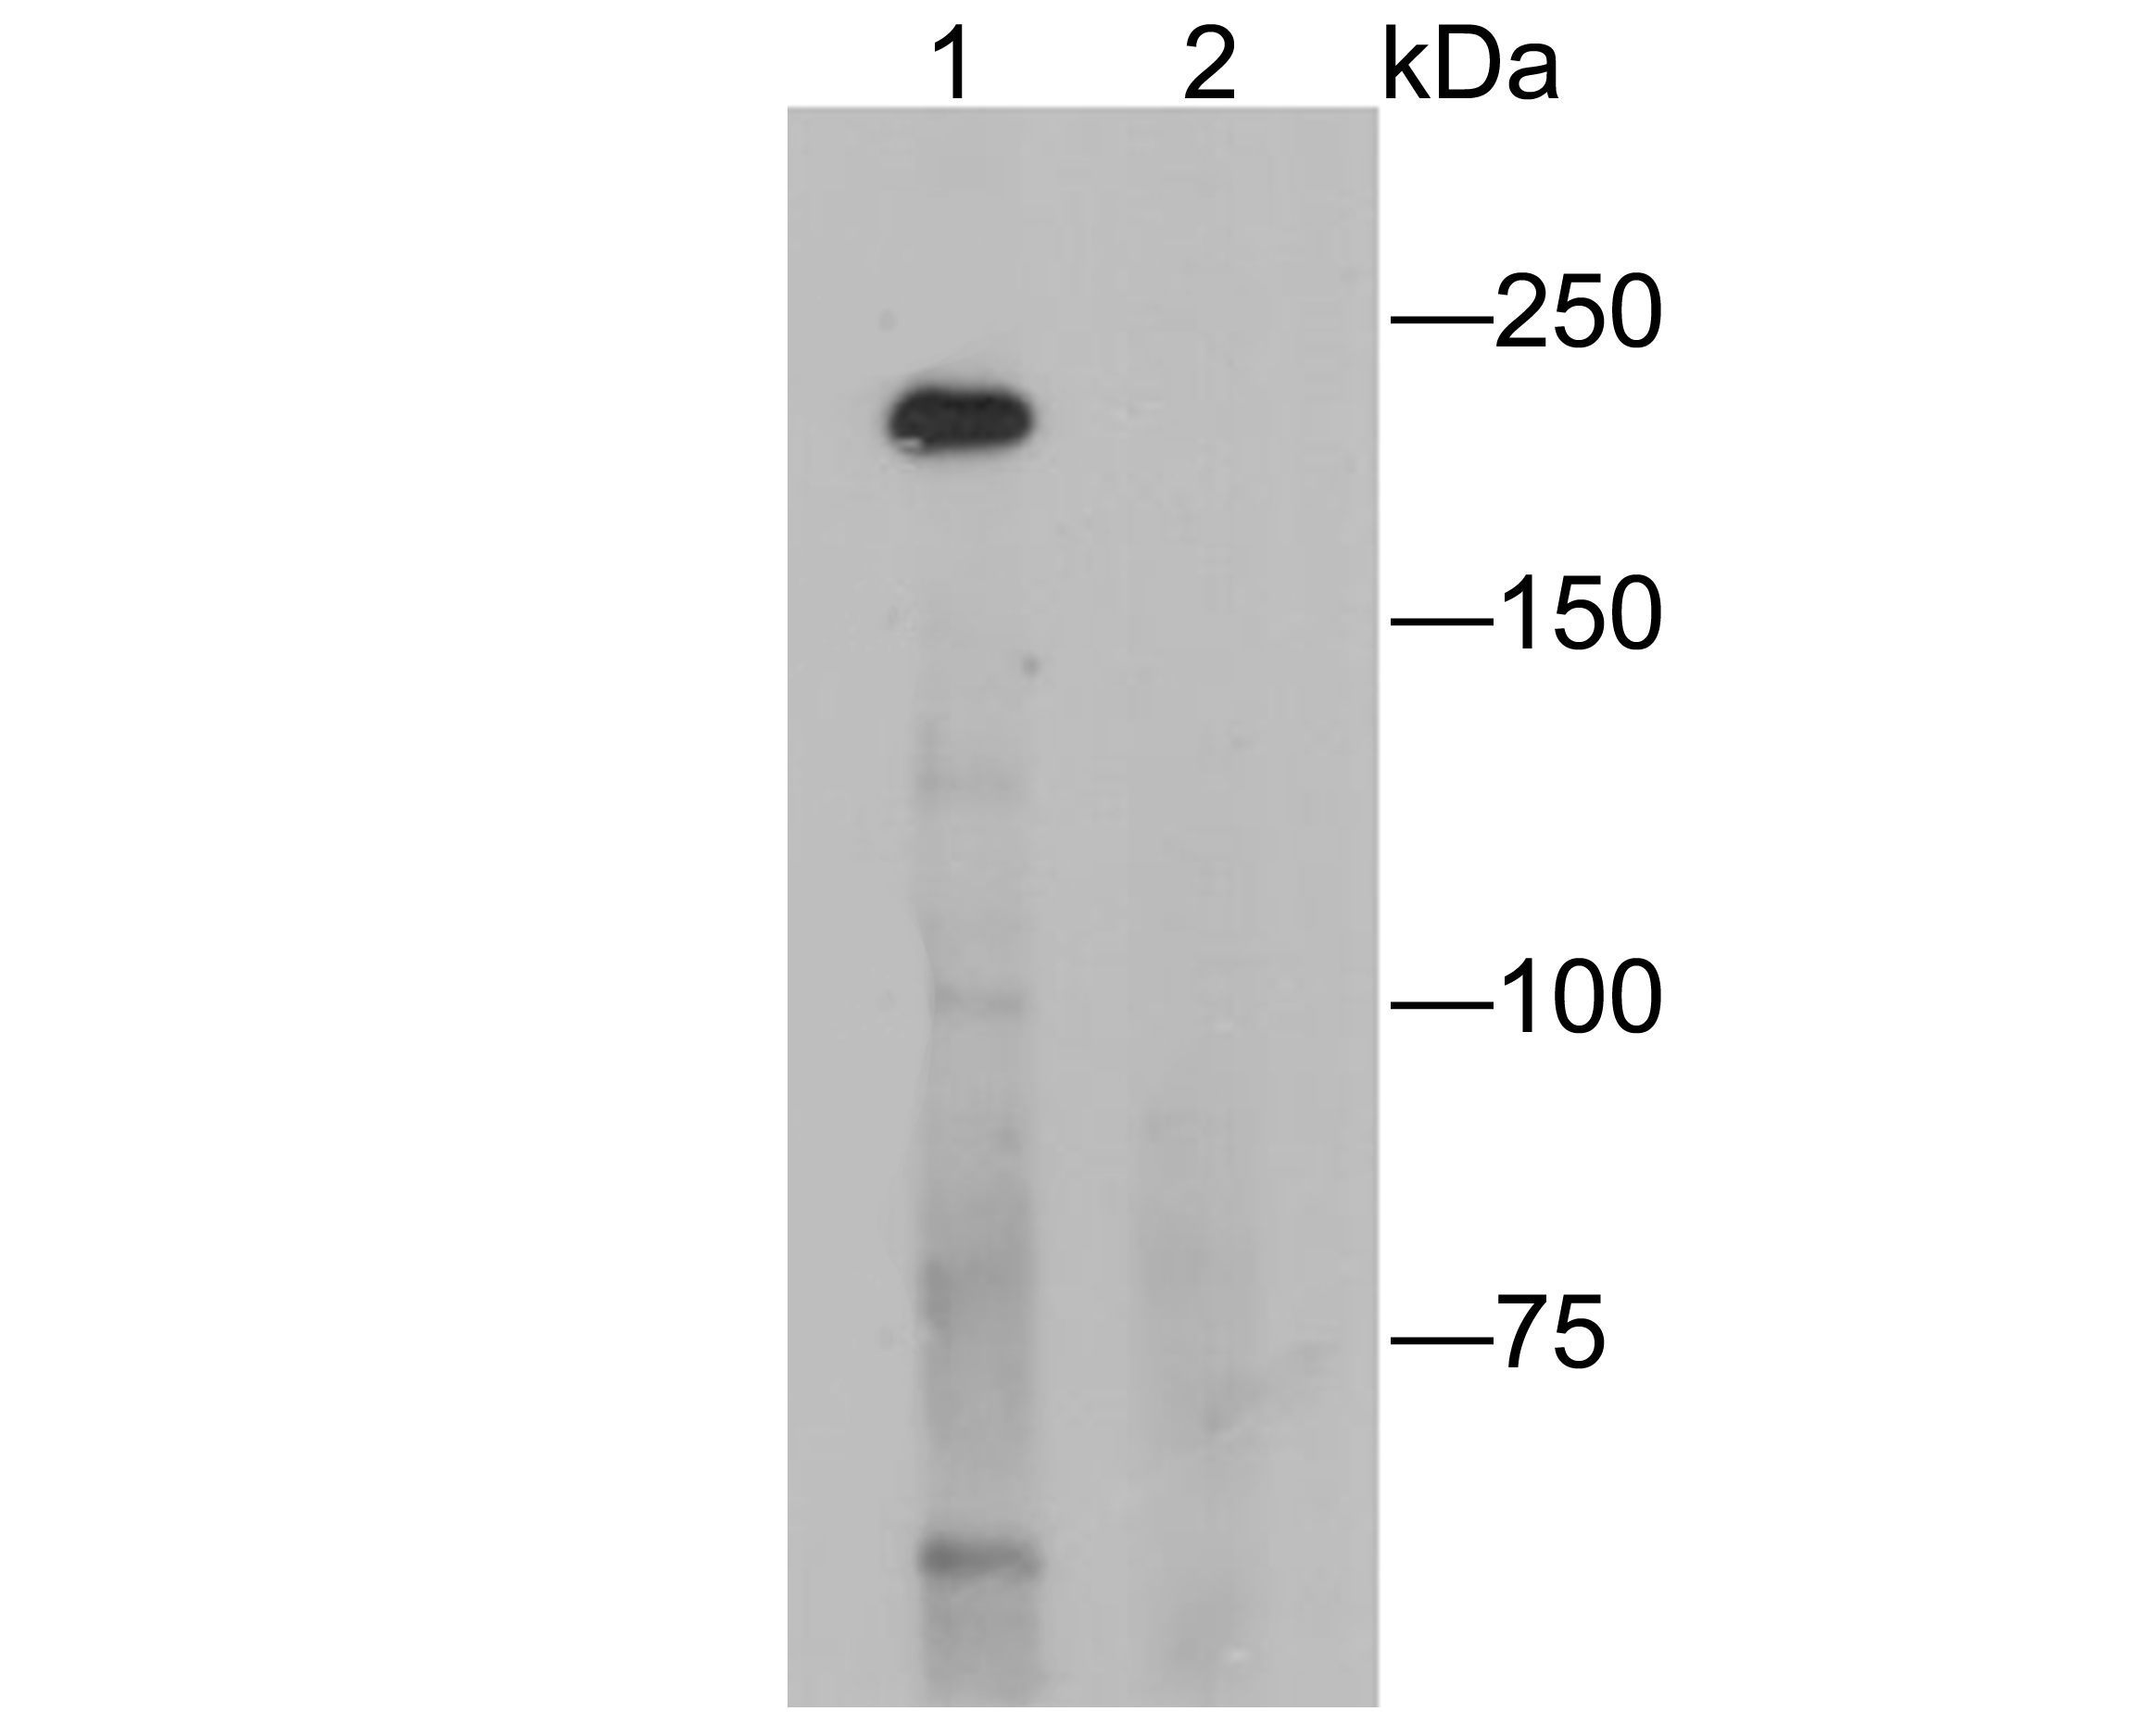 Western blot analysis of CD35 on K562 cell lysates. Proteins were transferred to a PVDF membrane and blocked with 5% BSA in PBS for 1 hour at room temperature. The primary antibody (ER1901-82, 1/500) was used in 5% BSA at room temperature for 2 hours. Goat Anti-Rabbit IgG - HRP Secondary Antibody (HA1001) at 1:5,000 dilution was used for 1 hour at room temperature.<br />  Positive control: <br />  Lane 1: K562 cell lysate<br />  Lane 2: K562 cell lysate, the primary antibody was preincubated with immunization peptide.